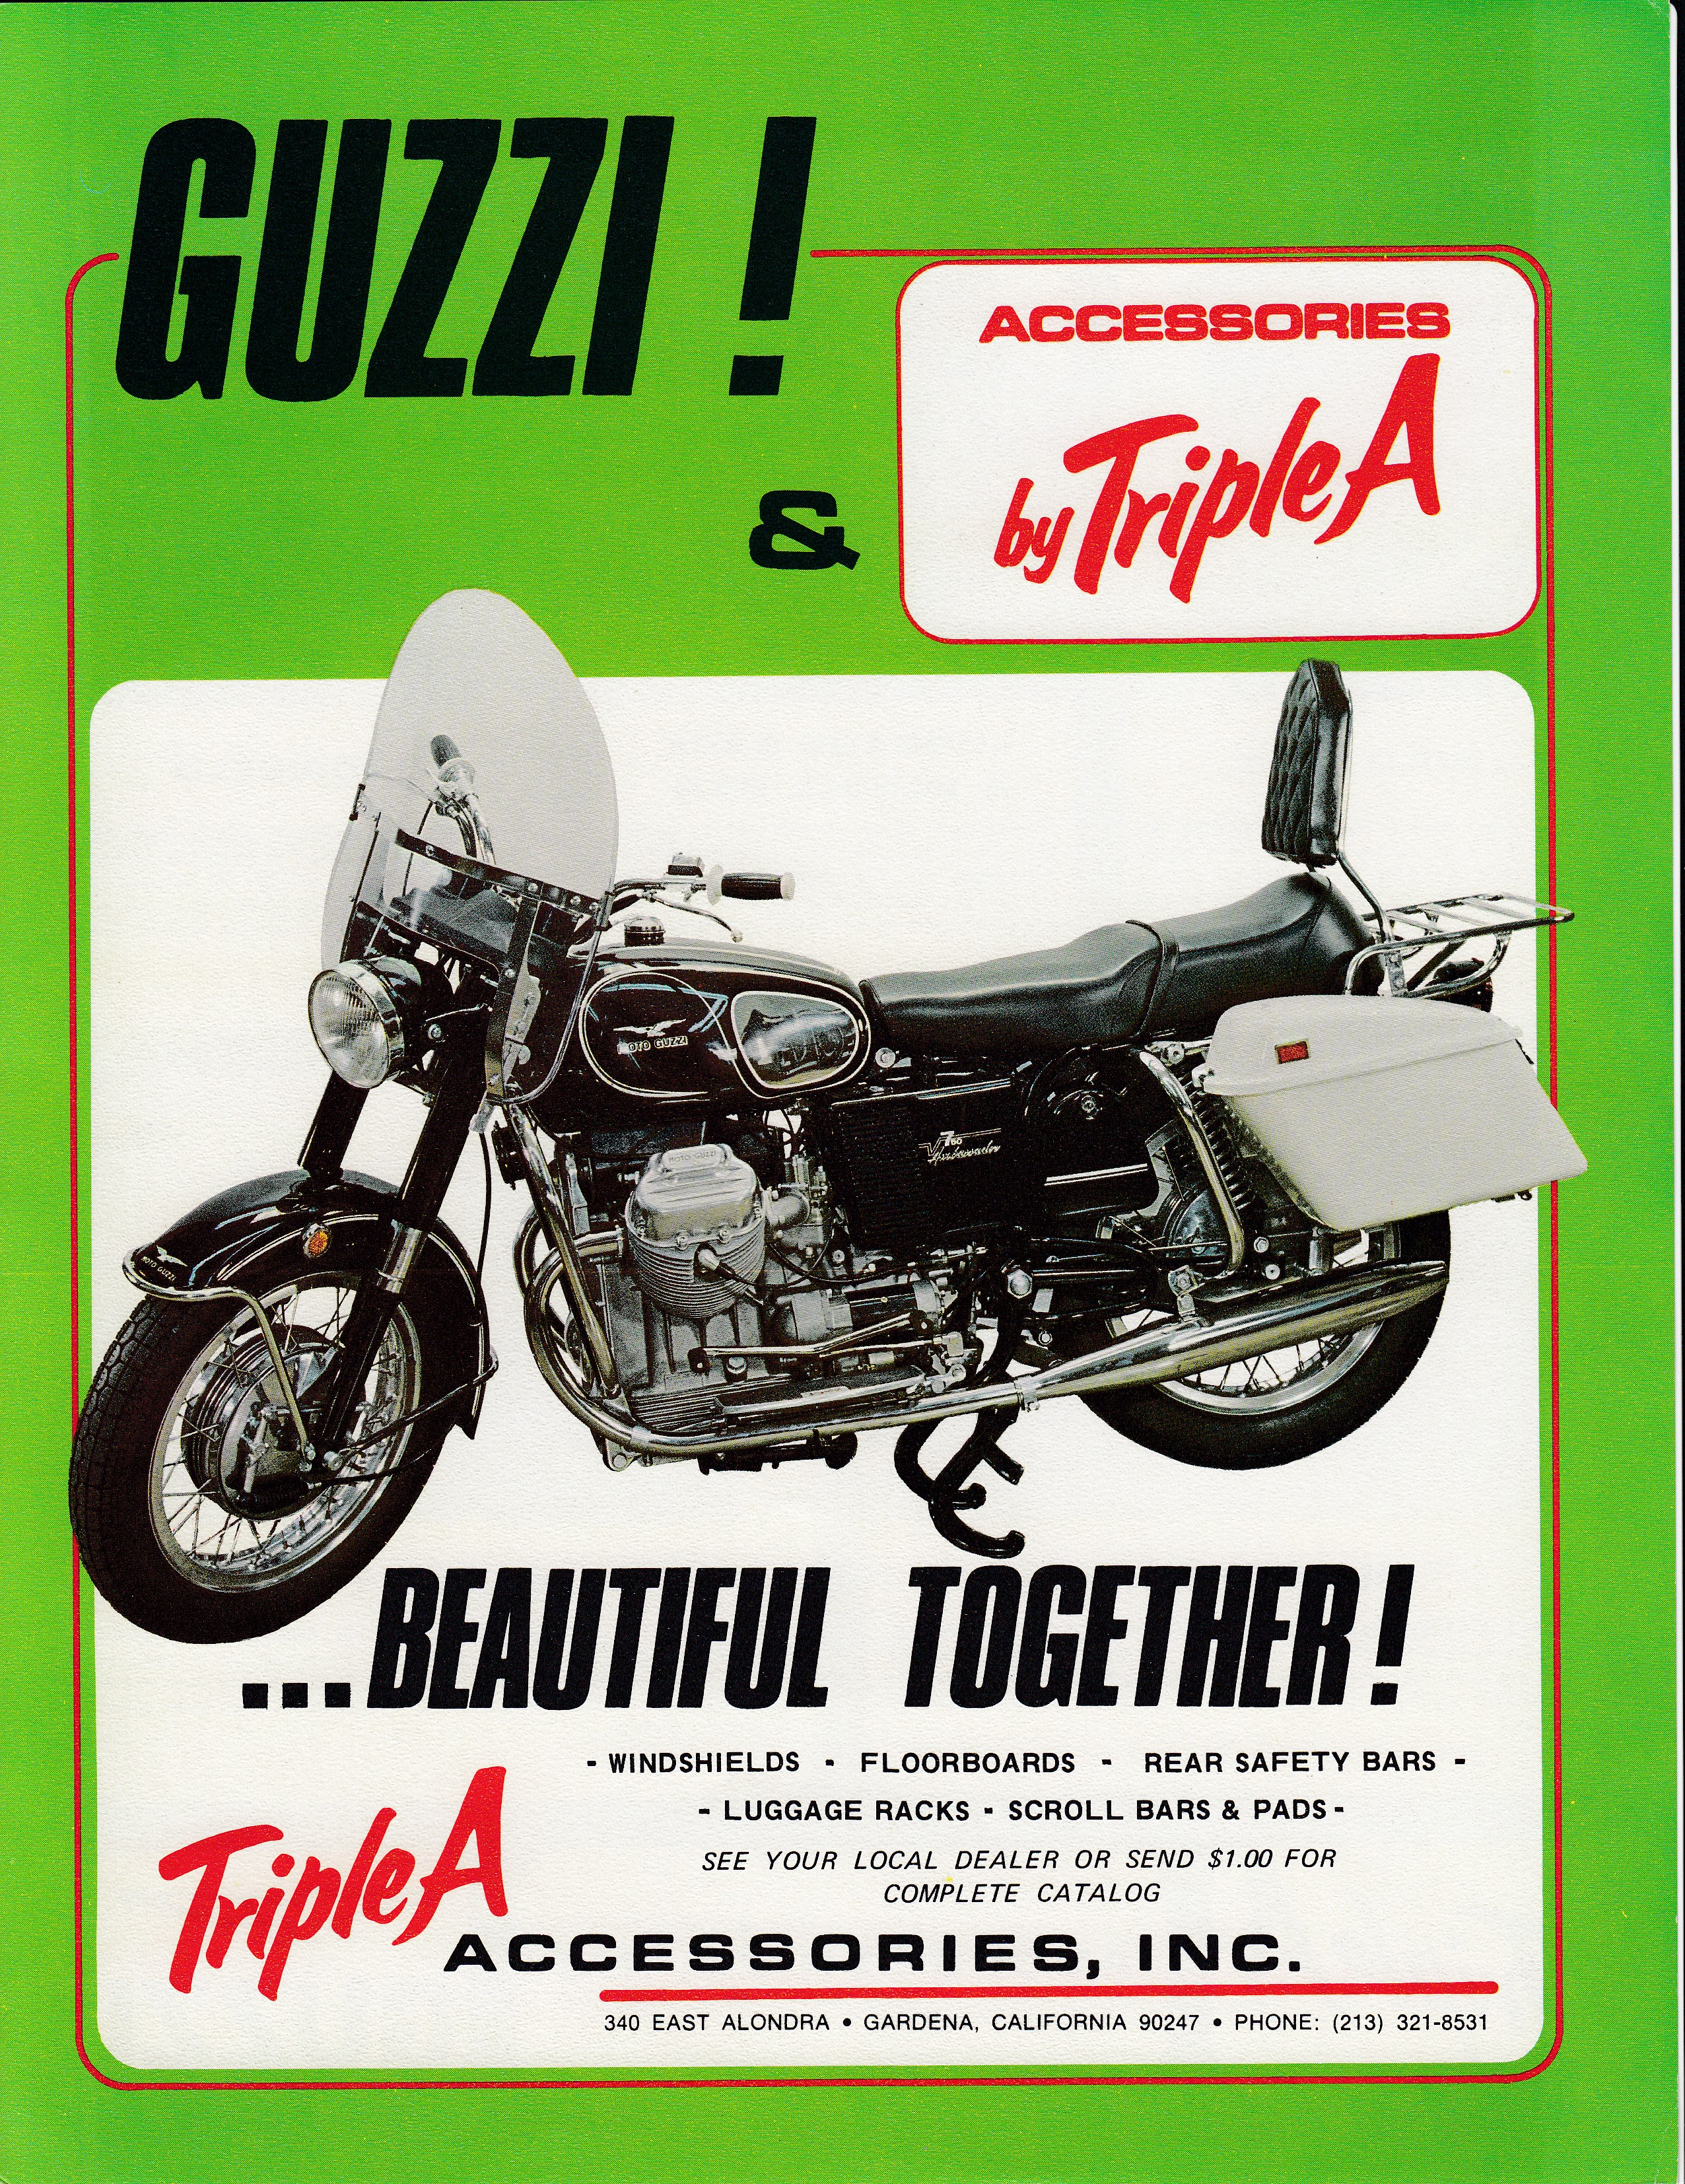 Moto Guzzi advertisement: Triple A accessories for Moto Guzzi motorcycles.